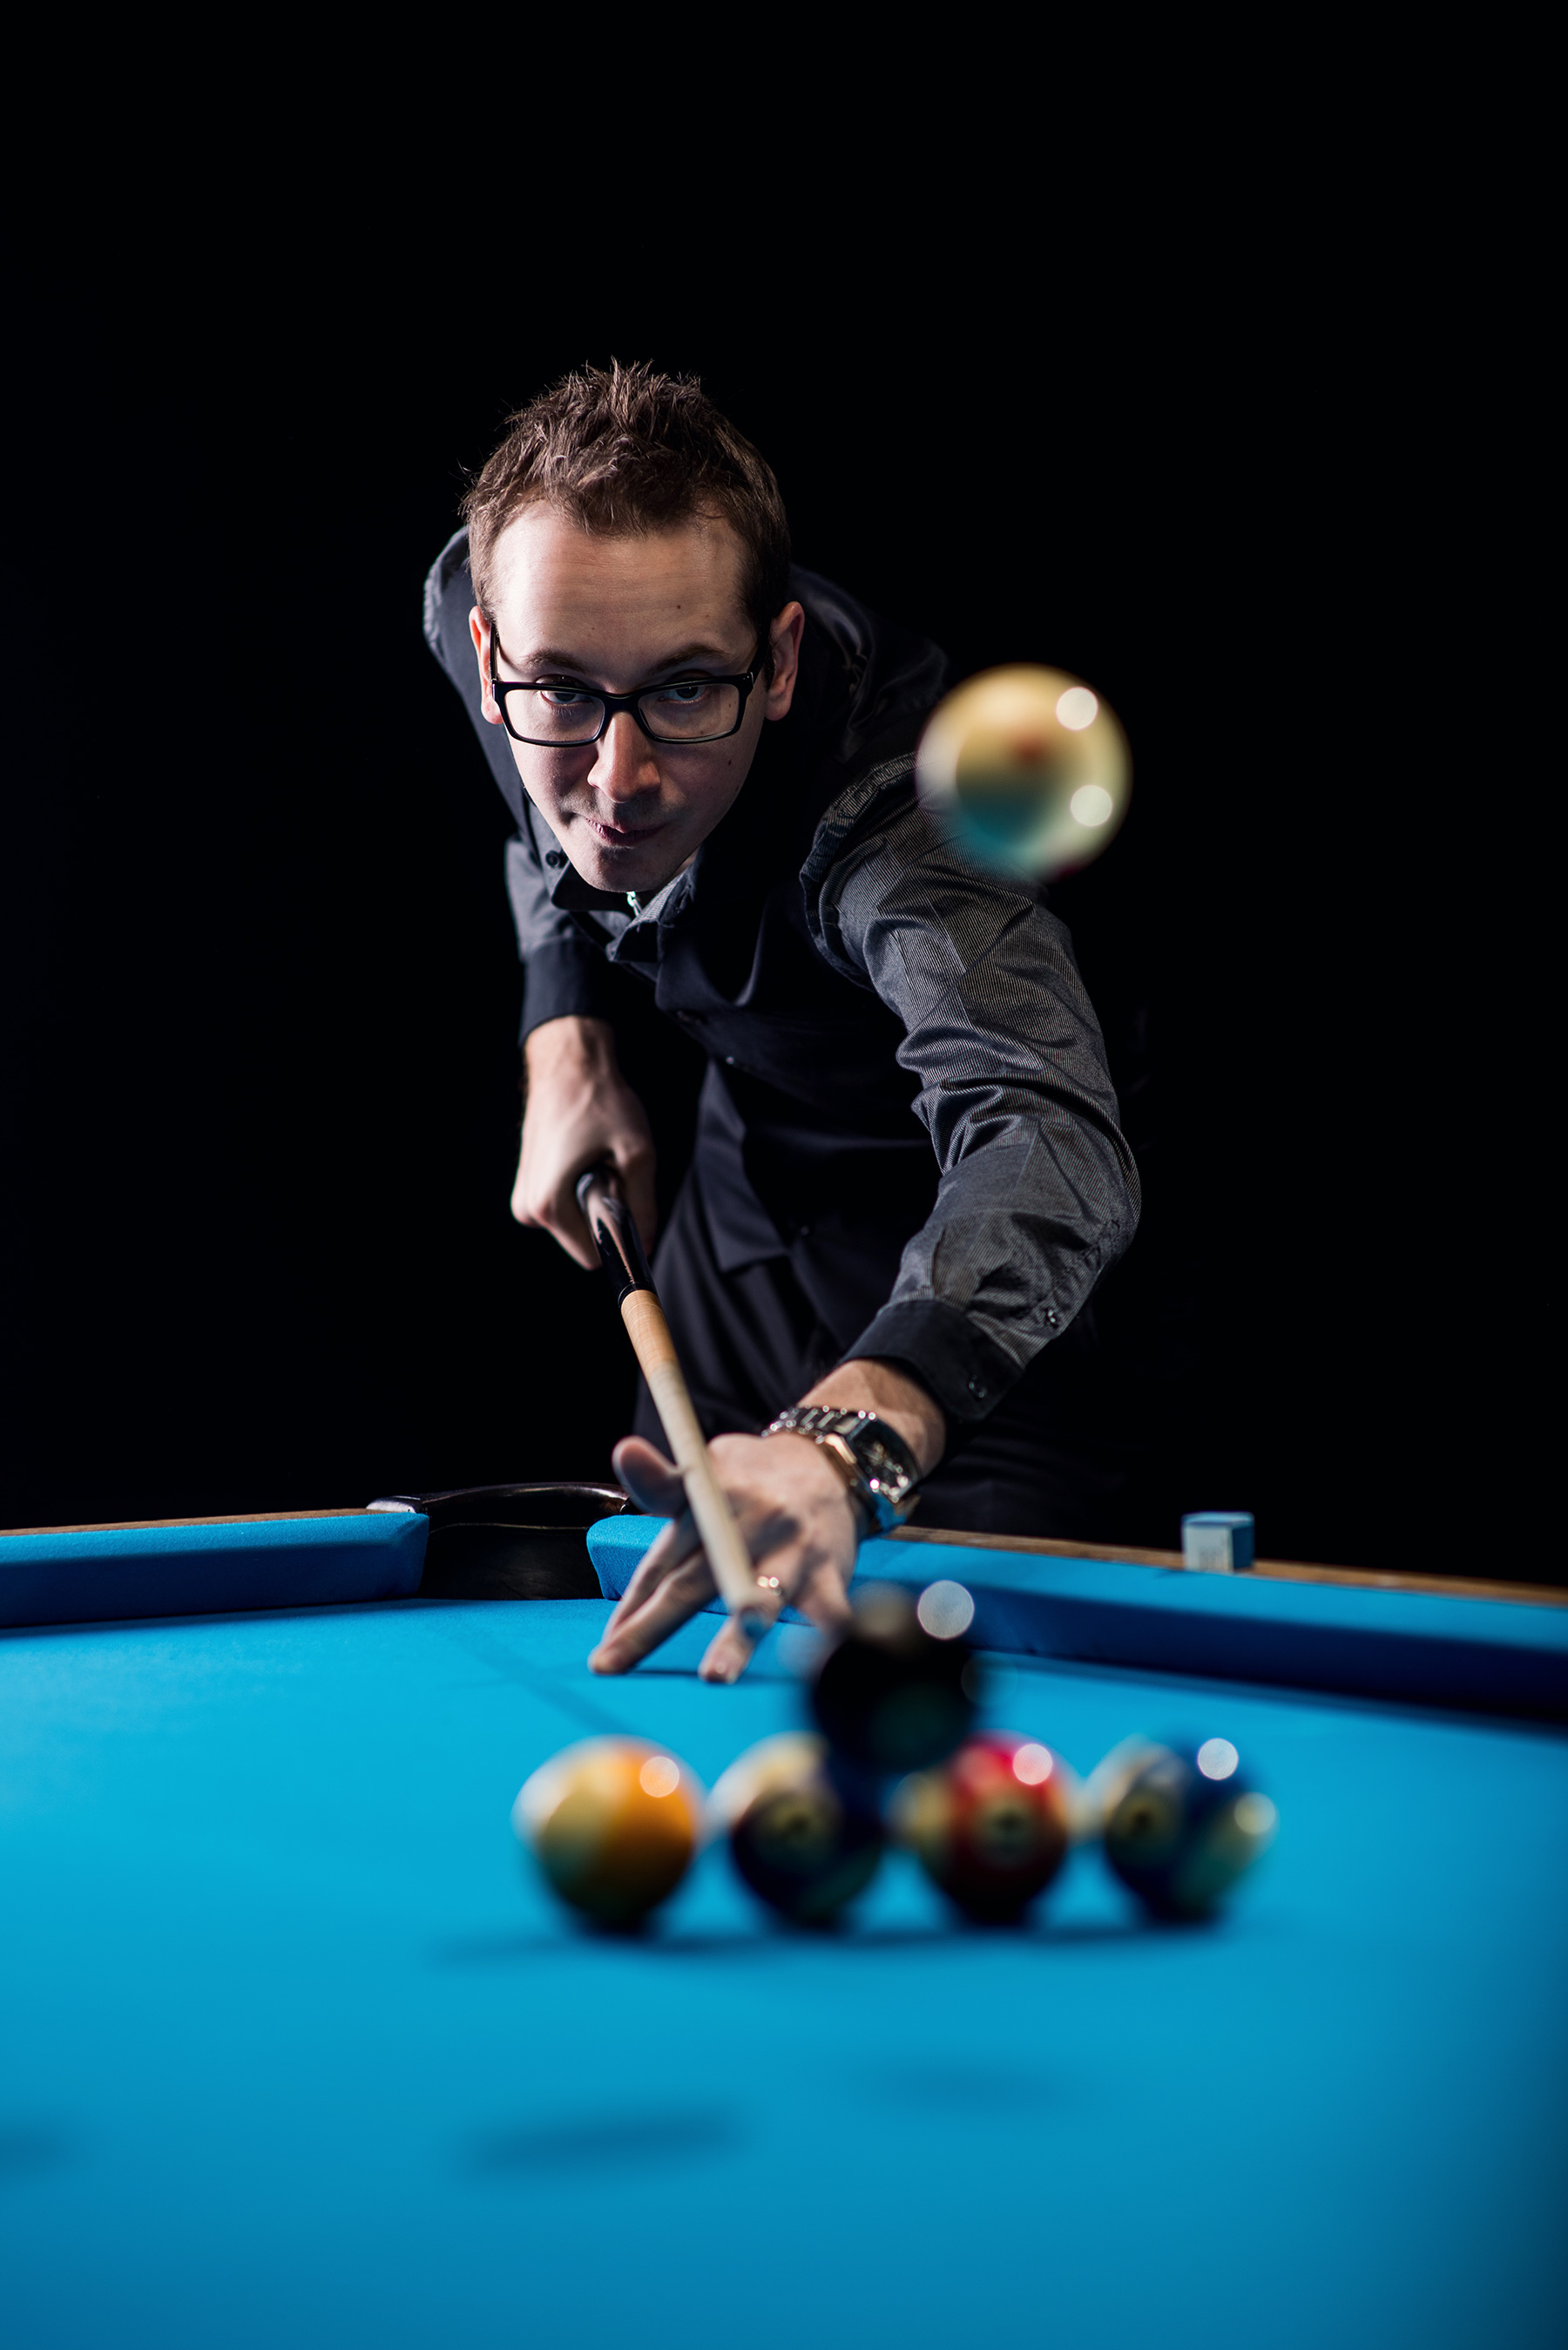 Florian 'Venom' Kohler on How to Become a Pool Trick-Shot Artist